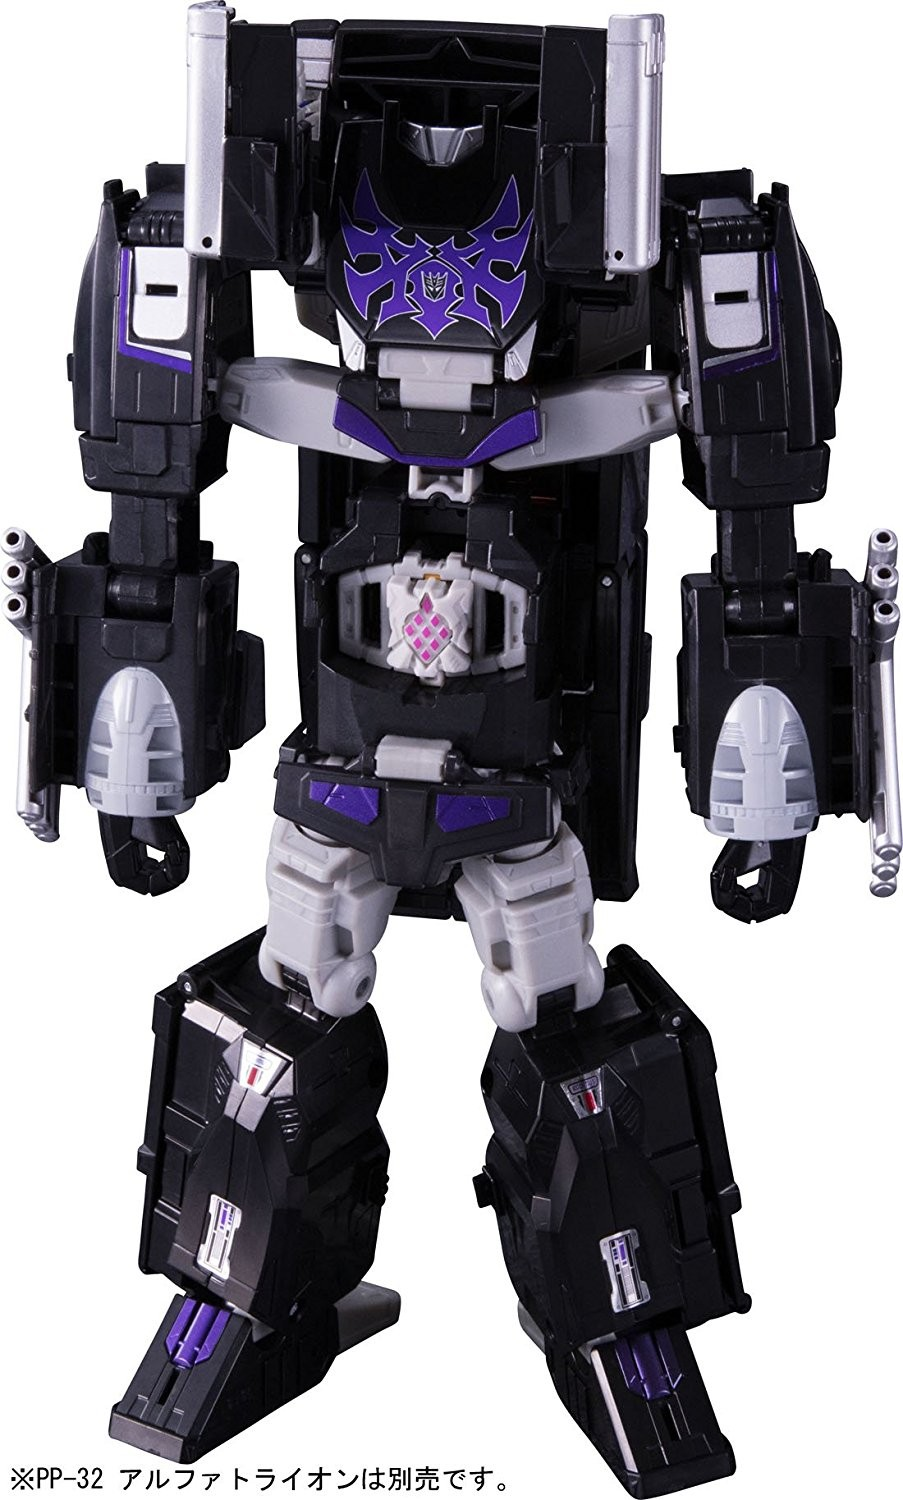 Transformers News: Official Images for Transformers Power of the Primes Outback, Cindersaur, Rodimus Unicronus